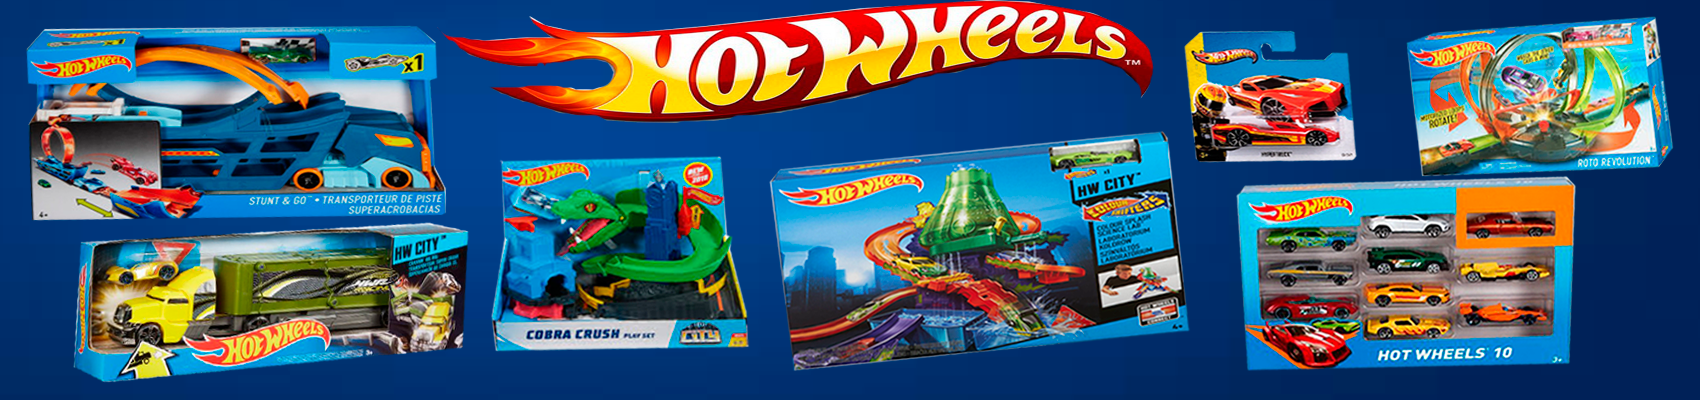 Hot Wheels2 Imagesslideshow